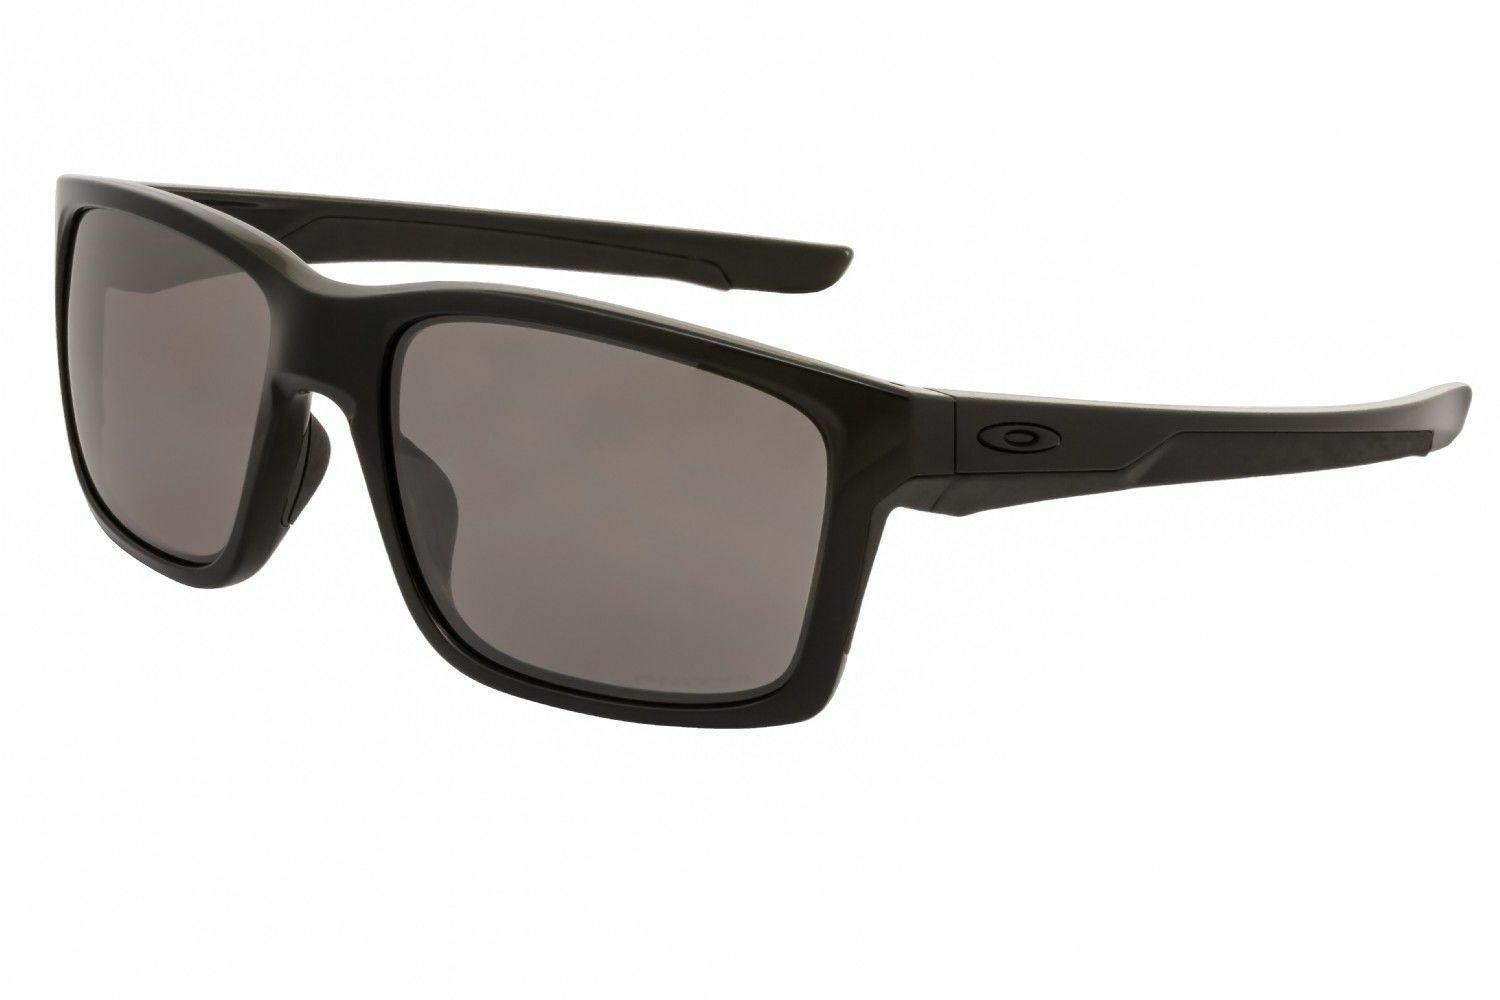 64c5f70c07 Oakley Mainlink Sunglasses Oo9264 08 Polished Black W  Prizm Daily ...